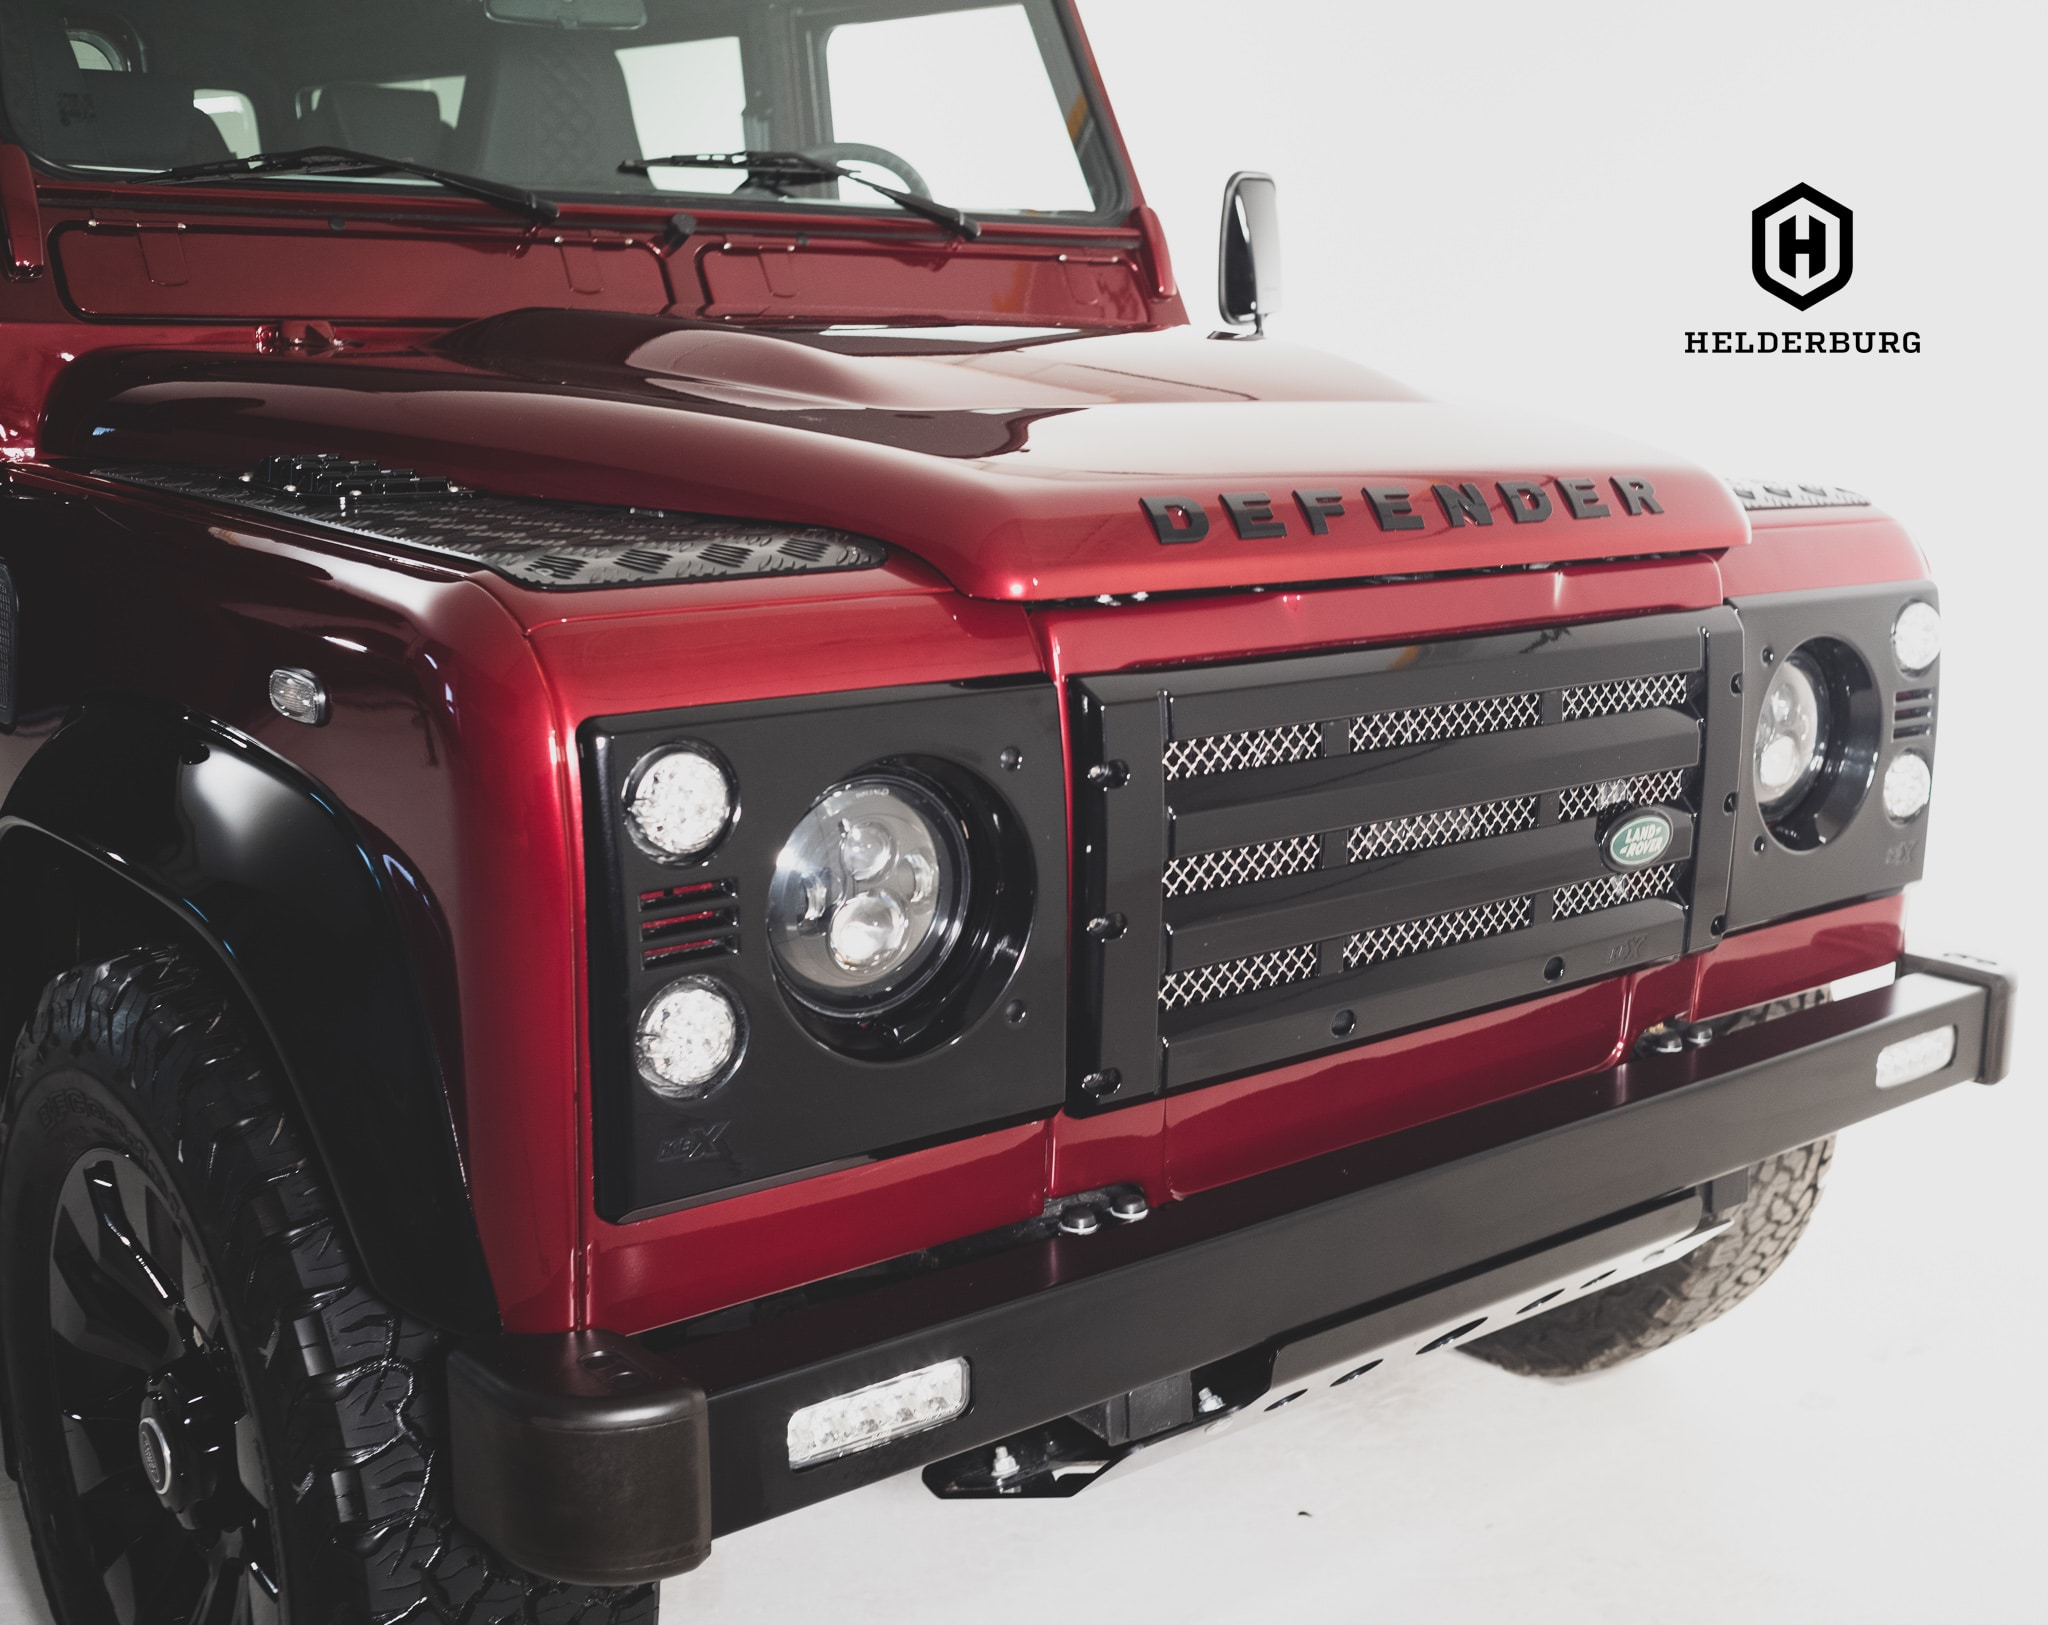 You can choose to have the chequer plate on top of the fenders and below the doors or not, What do you prefer the rugged look or would you rather see the Brilliant Helderburg Paint? Send this image to a friend and ask them.